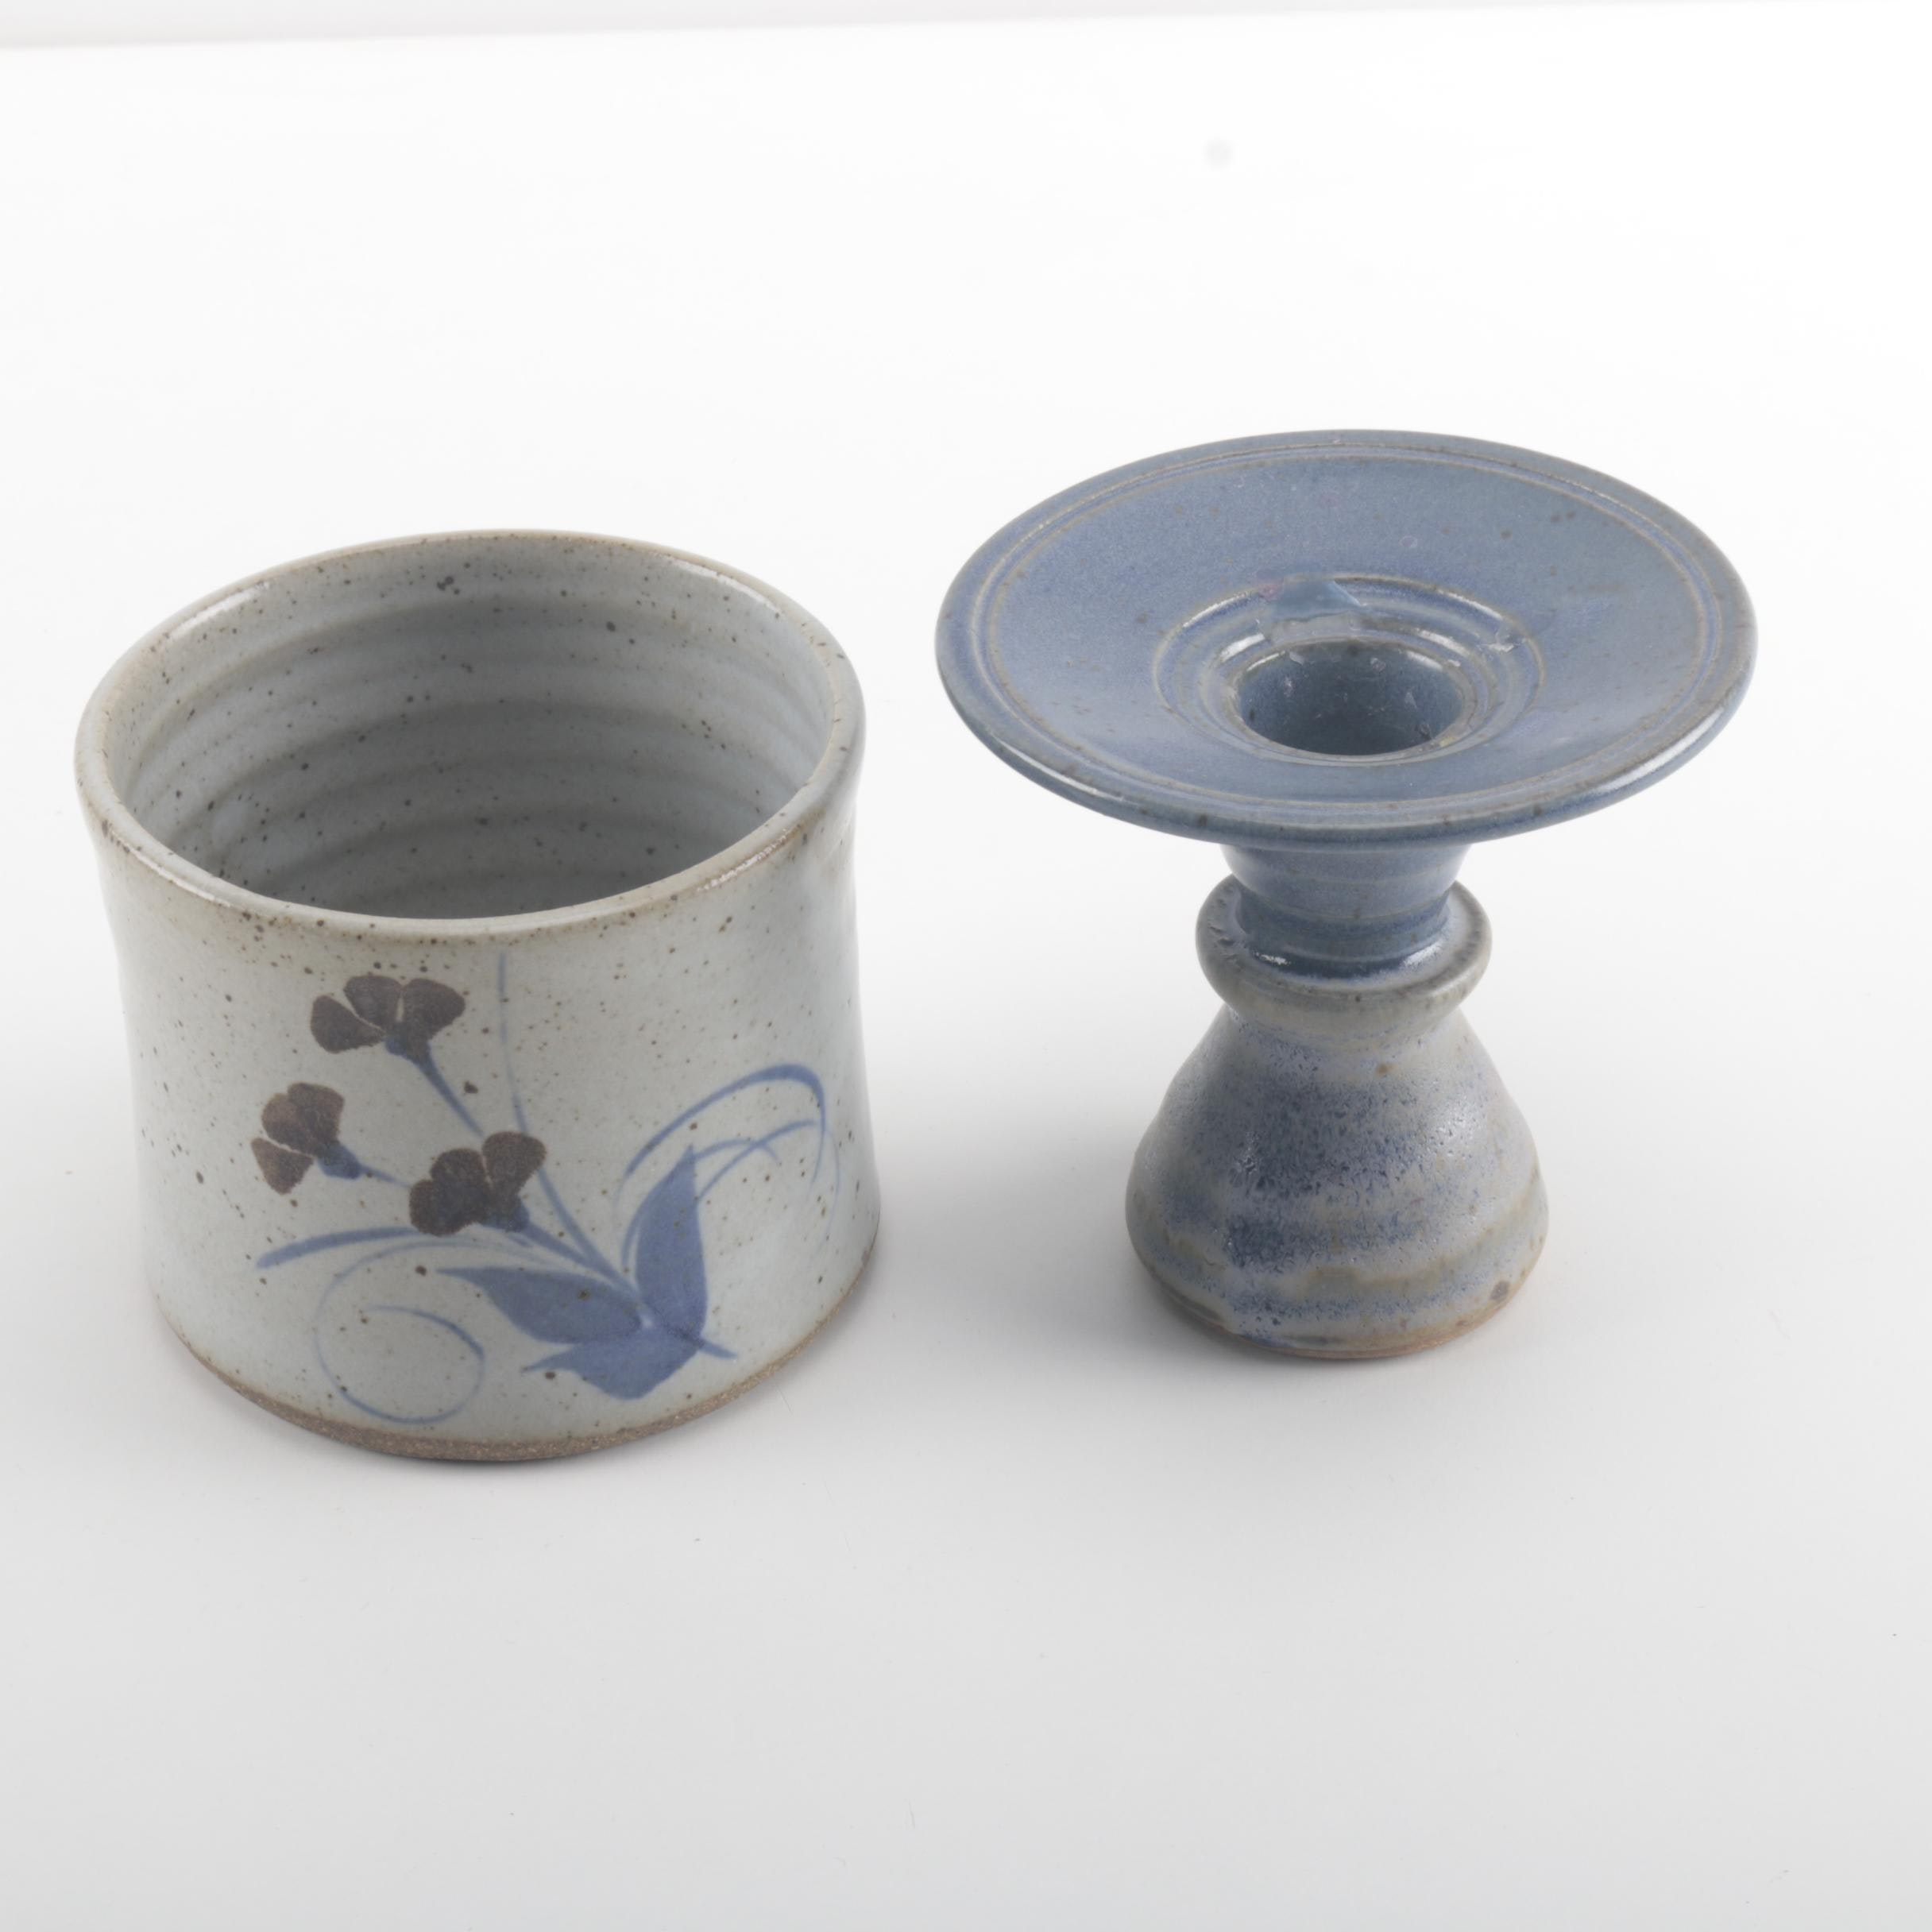 Hand Thrown Studio Stoneware Candlestick and Jar